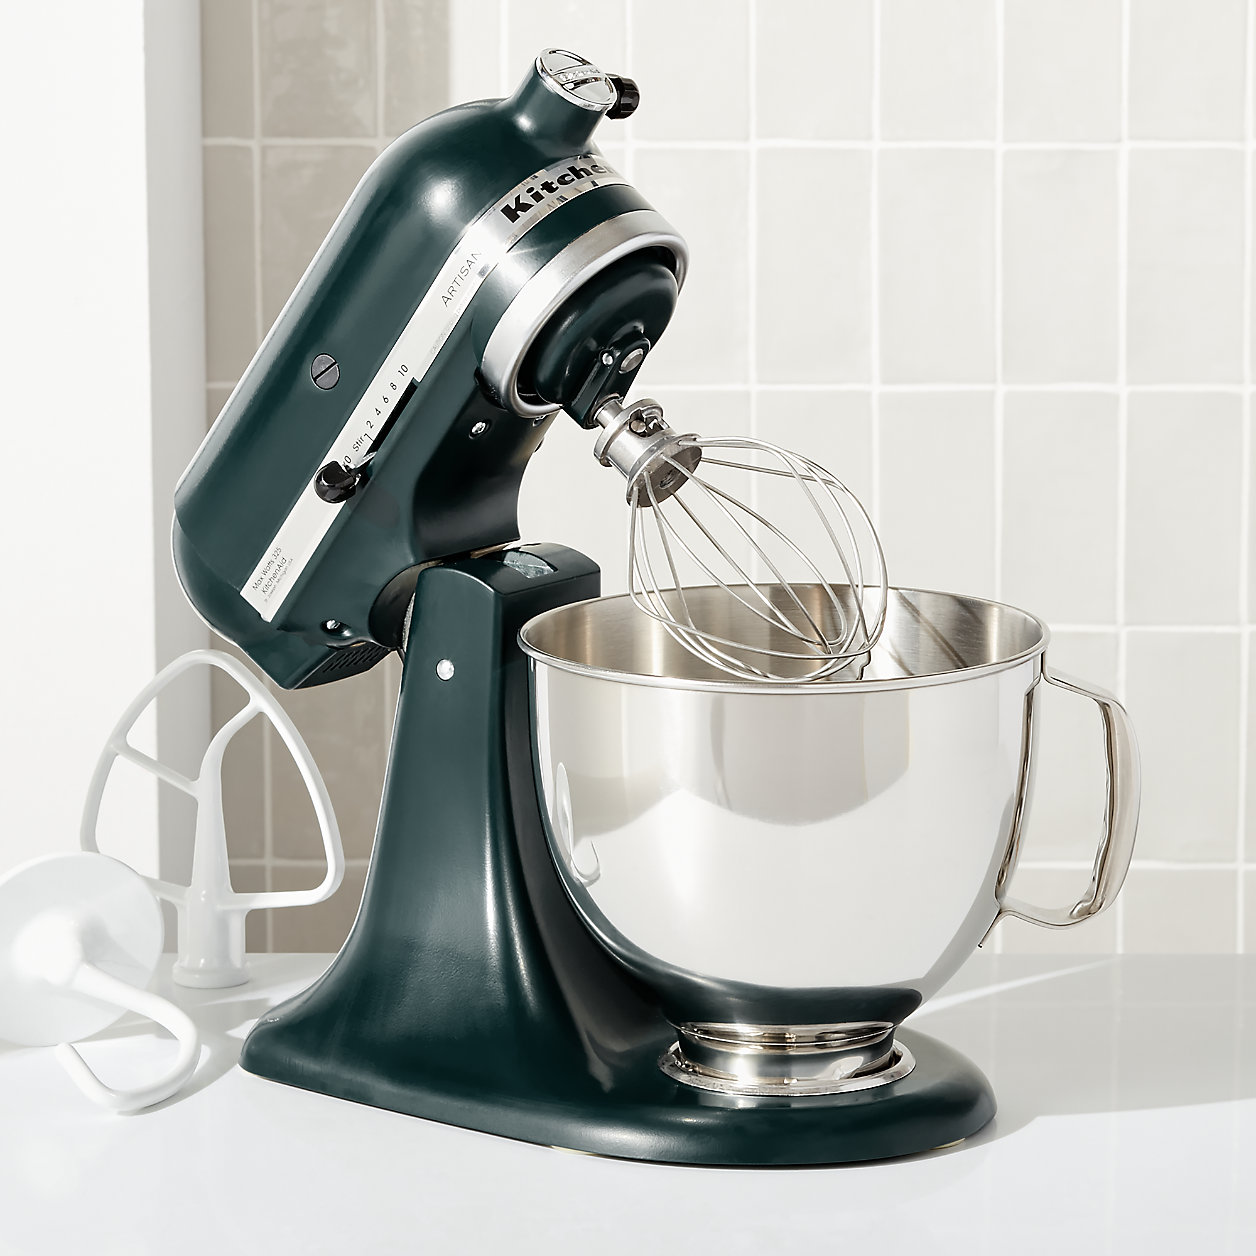 KitchenAid Stand Mixer with dark green exterior and stainless steel mixing bowl on countertop